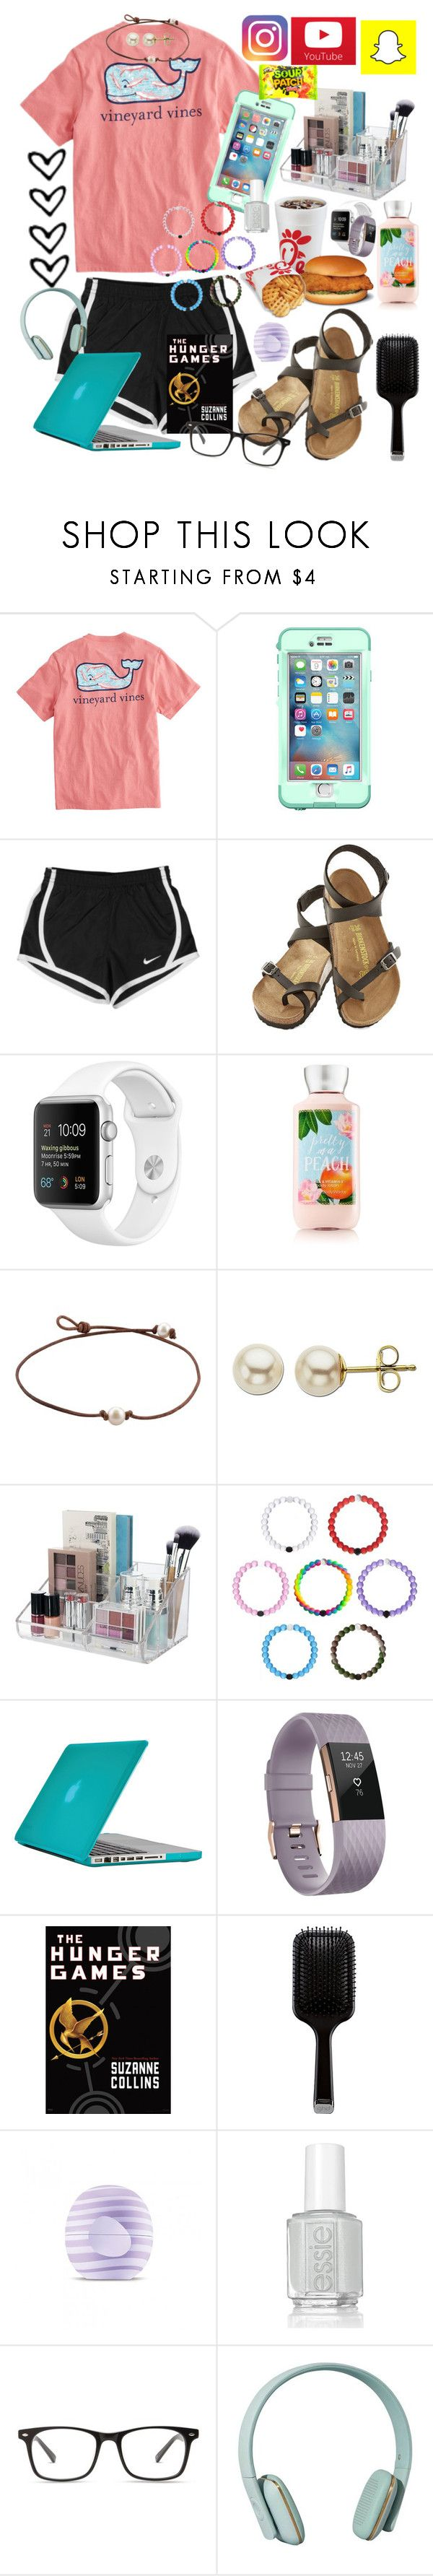 """""""LIFE✌🏼❤️✌🏼"""" by maris3456 ❤ liked on Polyvore featuring Vineyard Vines, LifeProof, NIKE, Birkenstock, Lord & Taylor, Speck, Fitbit, GHD, Eos and Essie"""